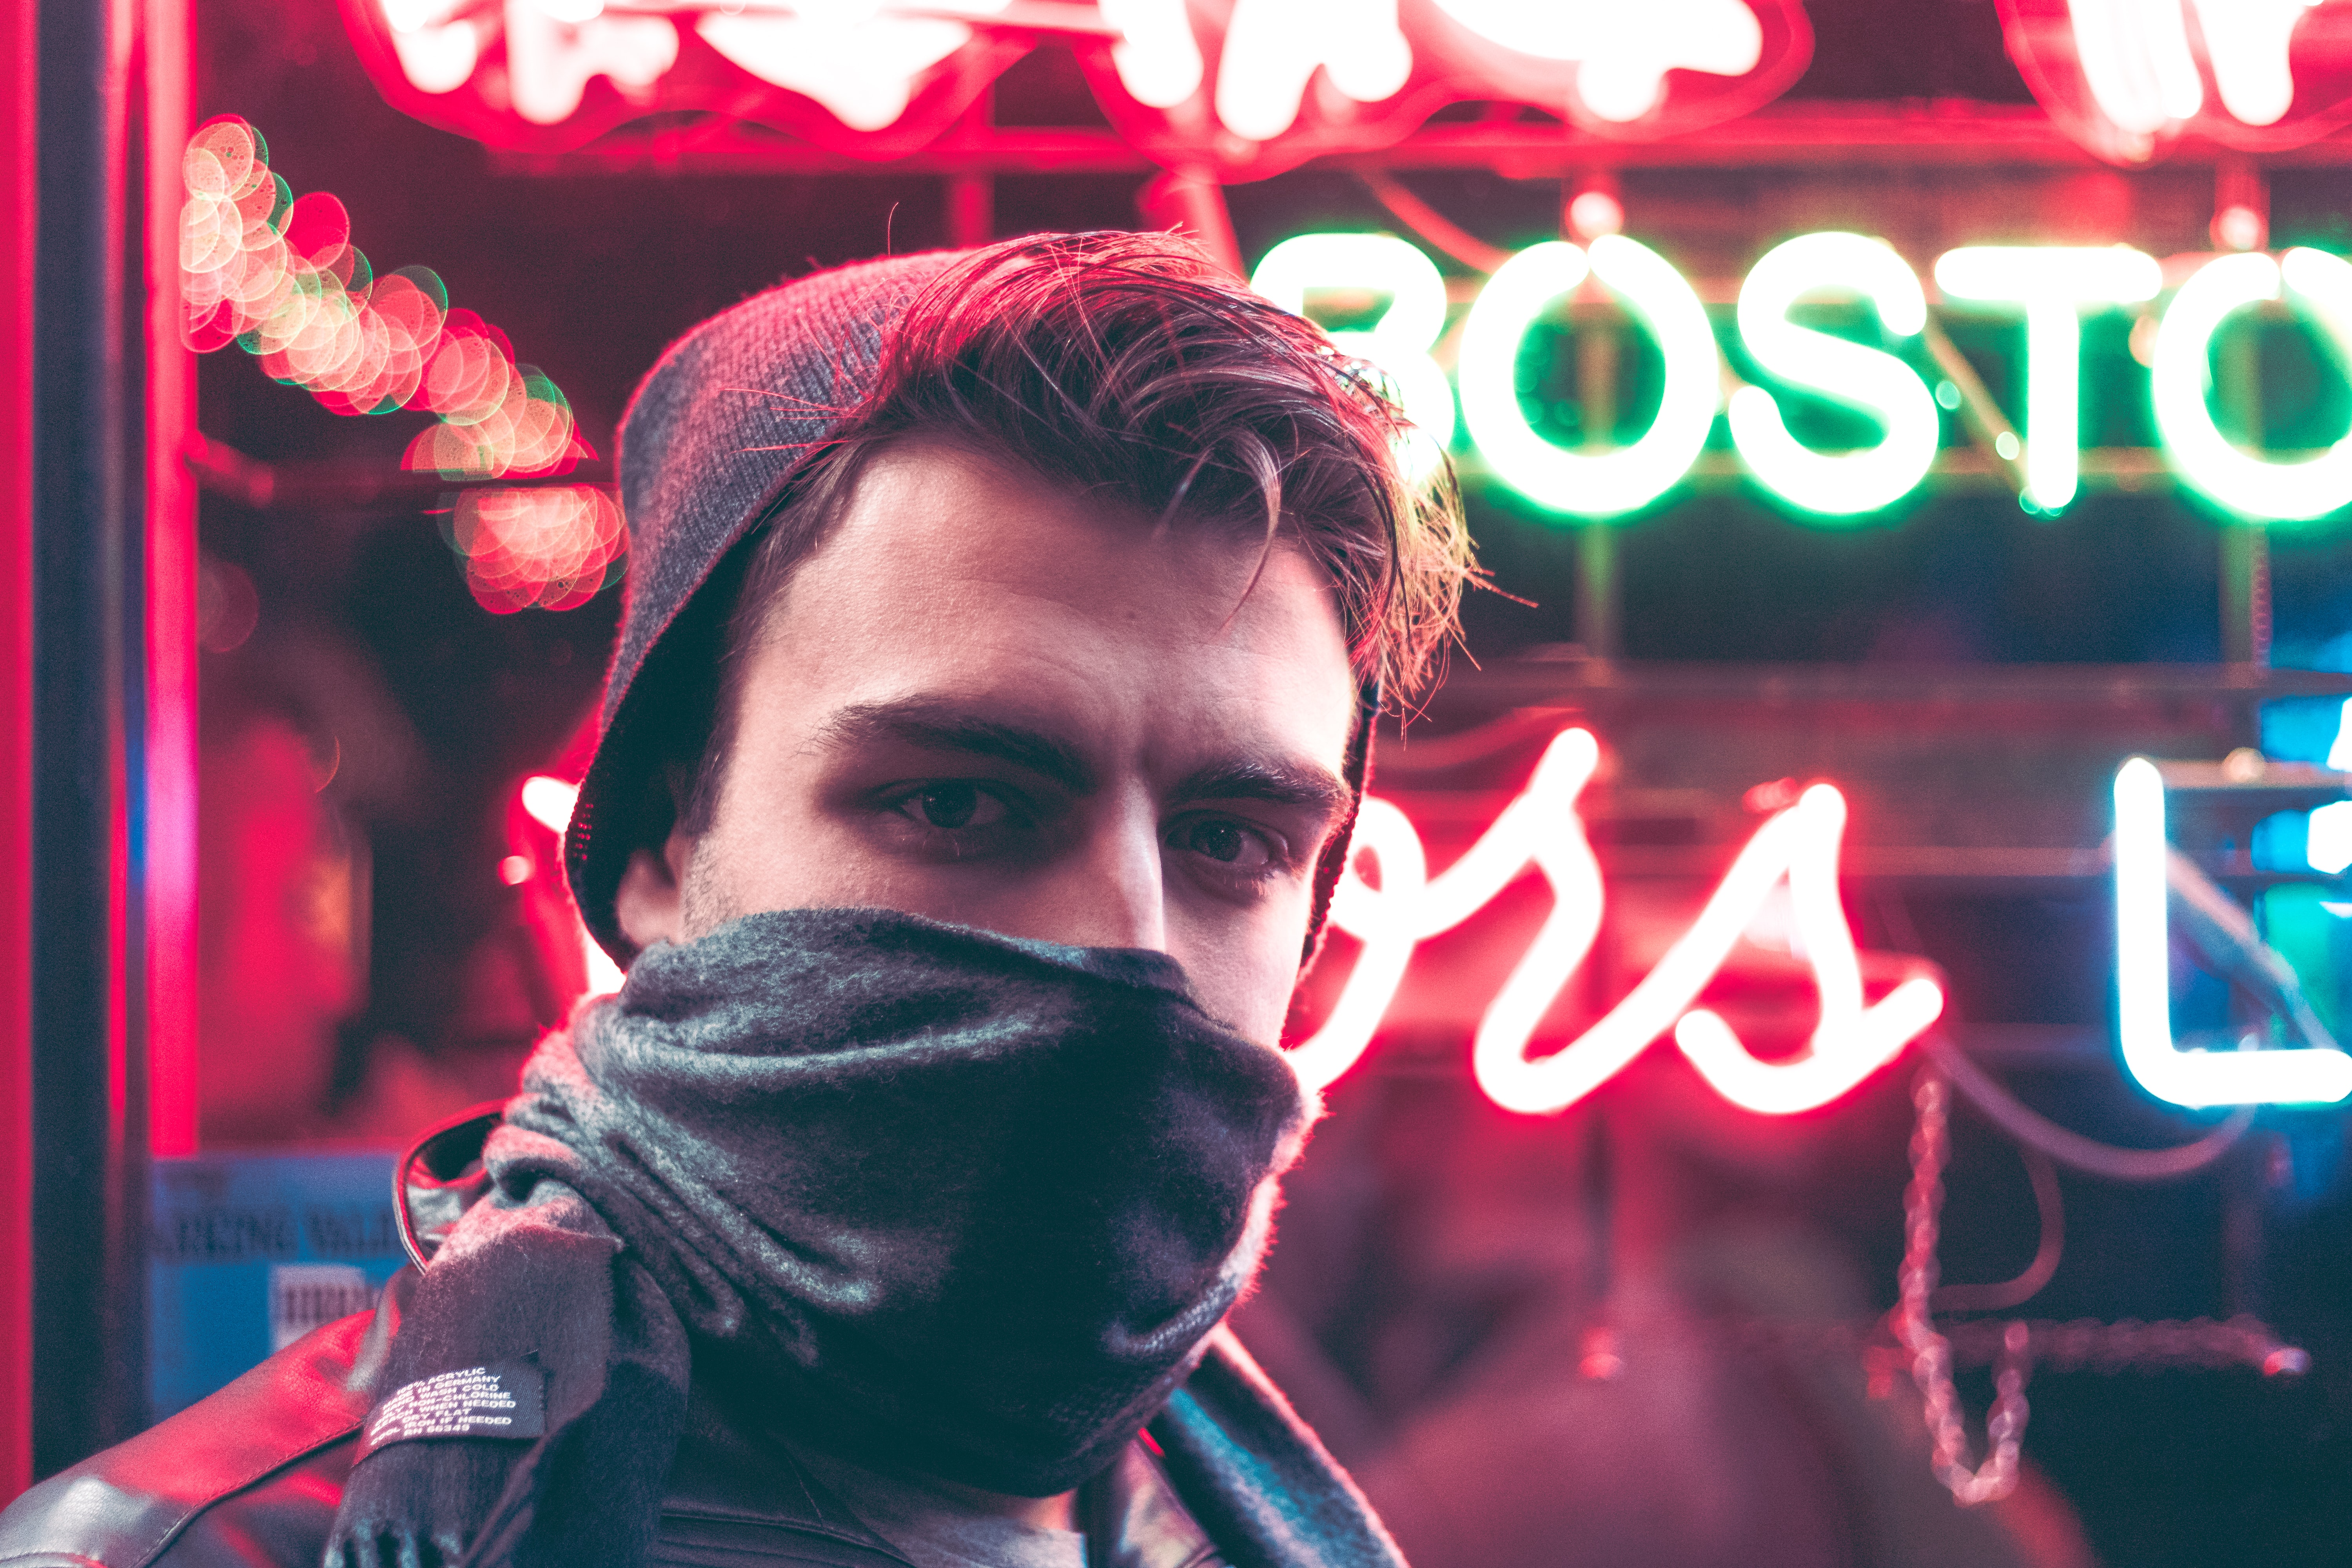 man with face half covered with mask standing in front of red and green neon light signage during daytime